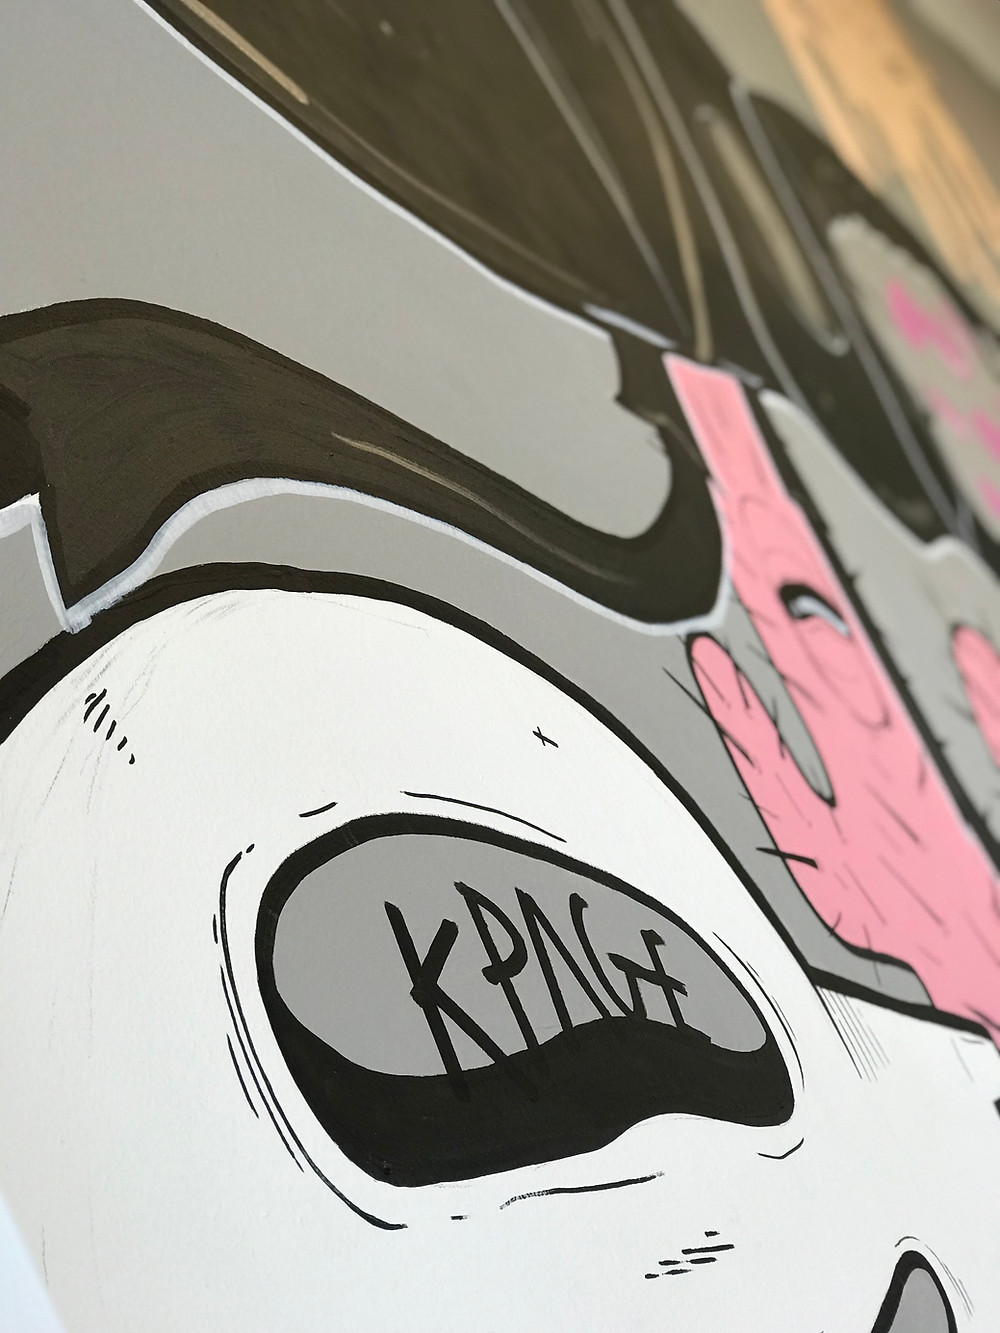 a mural by kieran page illustration on our workshop wall